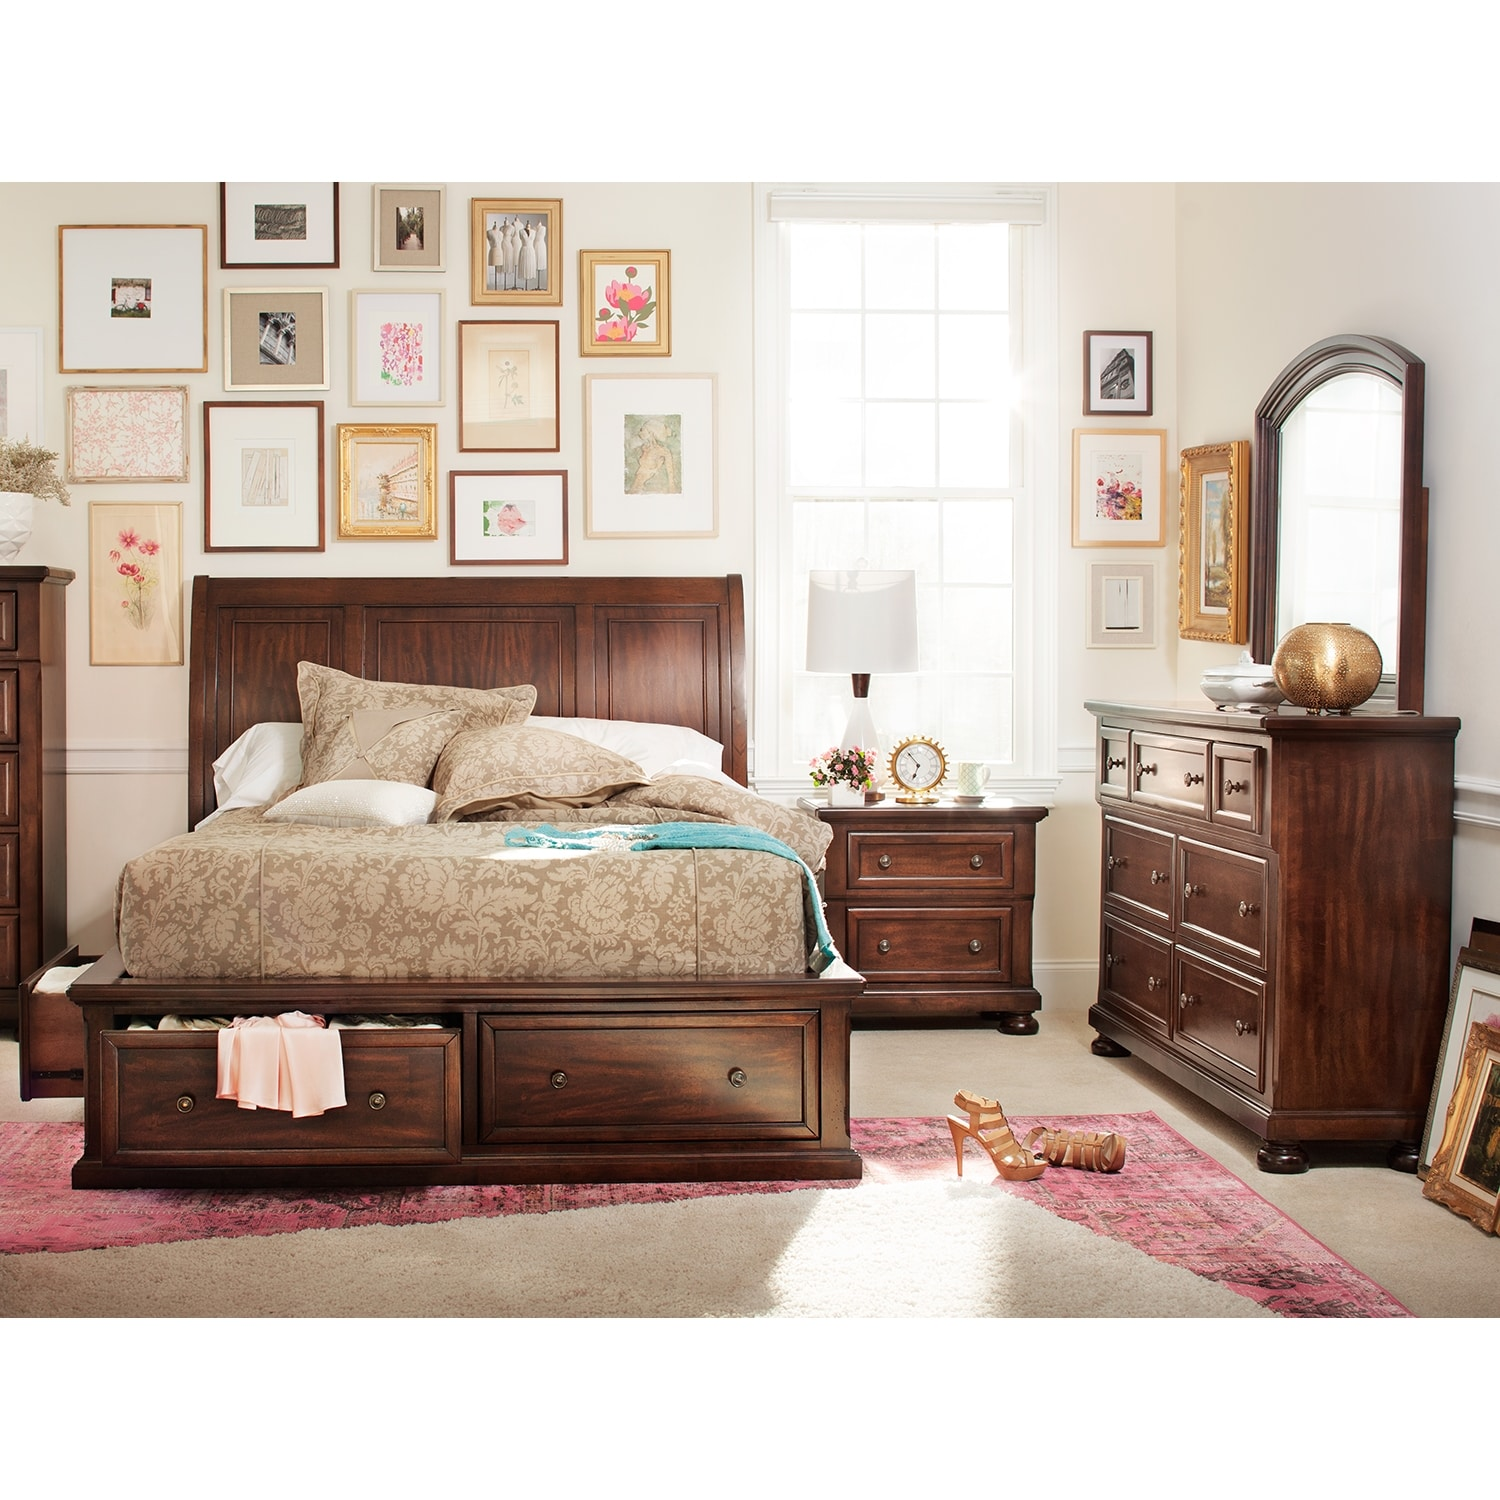 Hanover 6-Piece King Storage Bedroom Set - Cherry